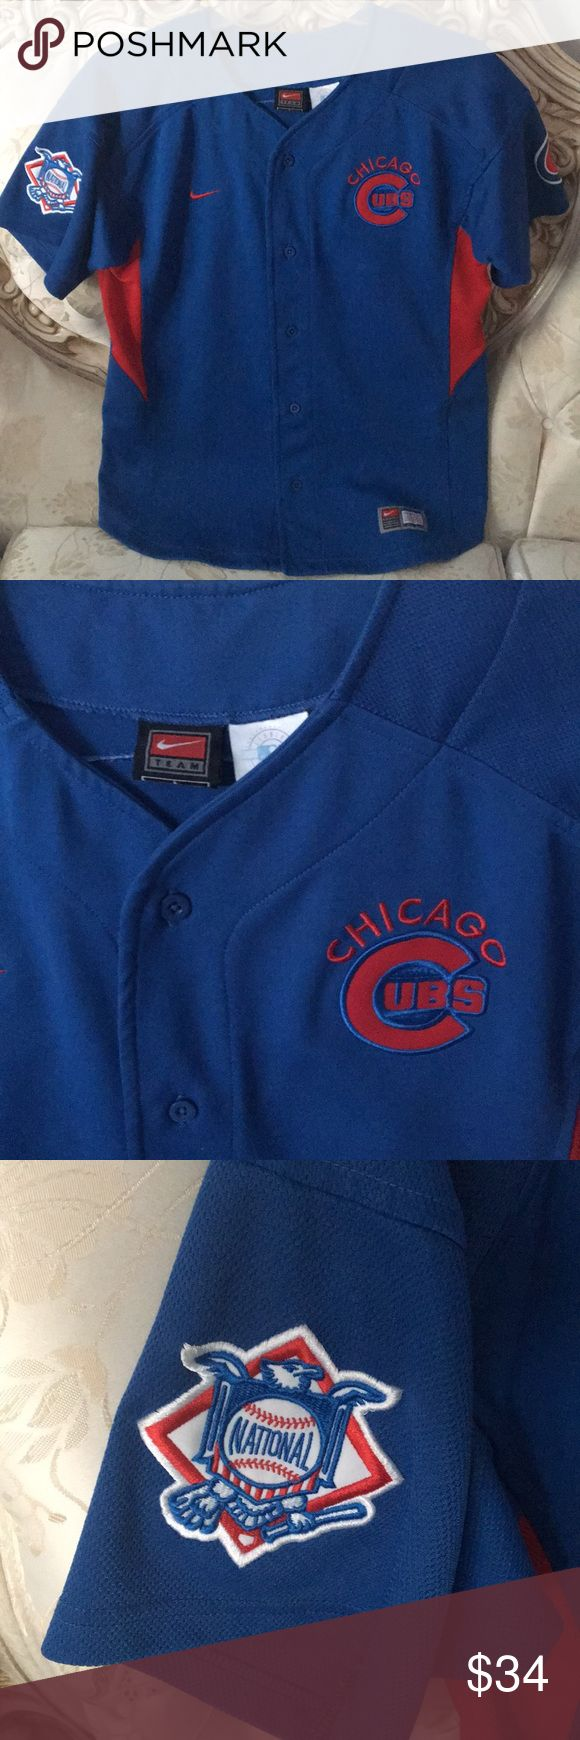 SAMMY SOSA CHICAGO CUBS JERSEY Beautiful, vintage! Nike Other